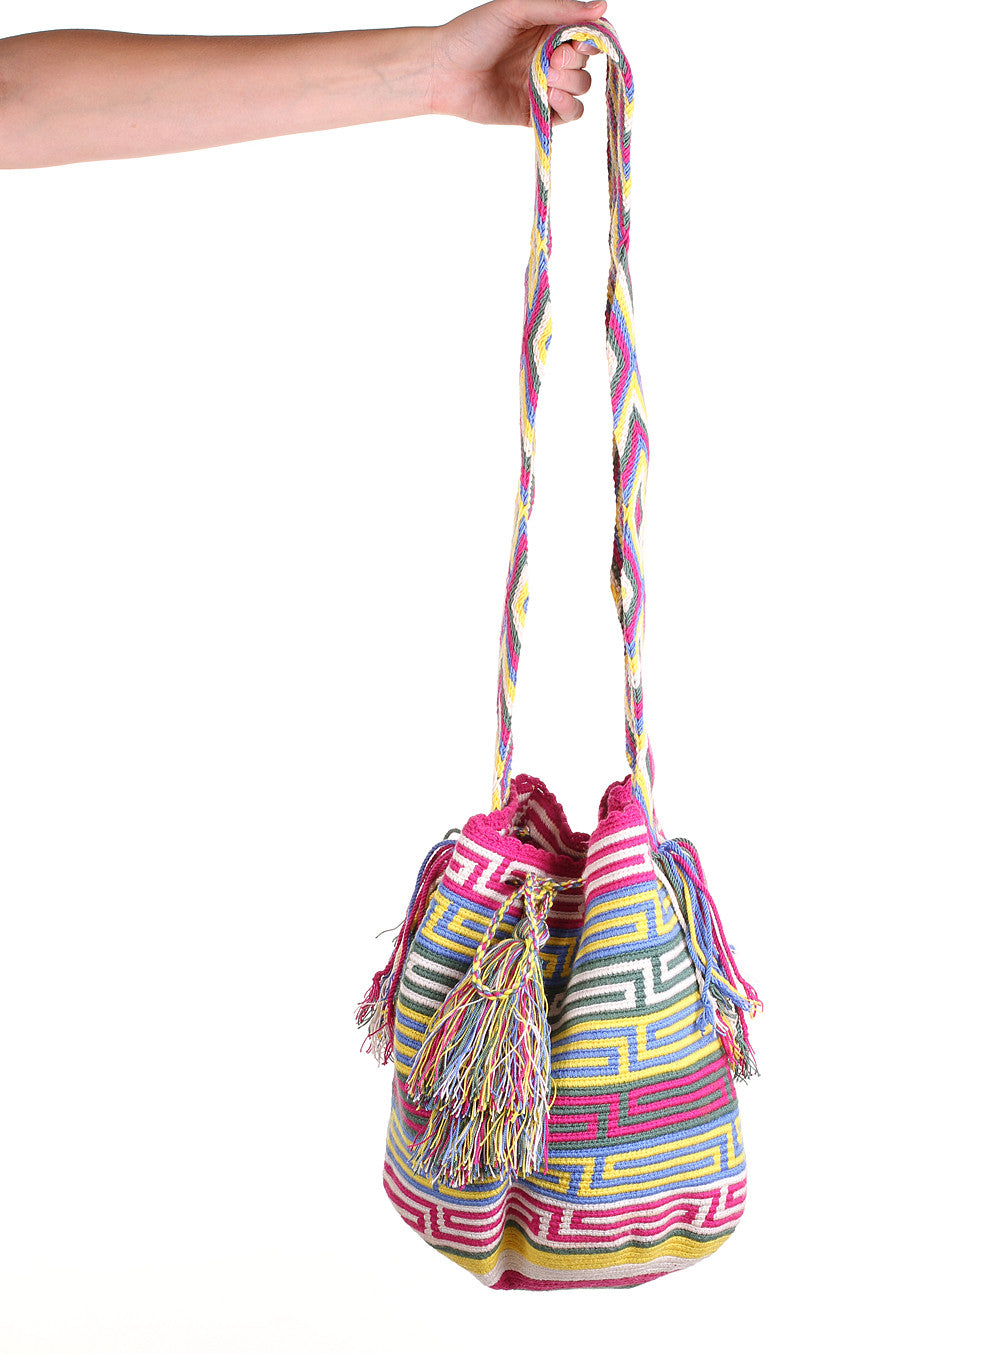 WB106 - Crochet Wayuu Bucket Bag – One-of-a-kind Design